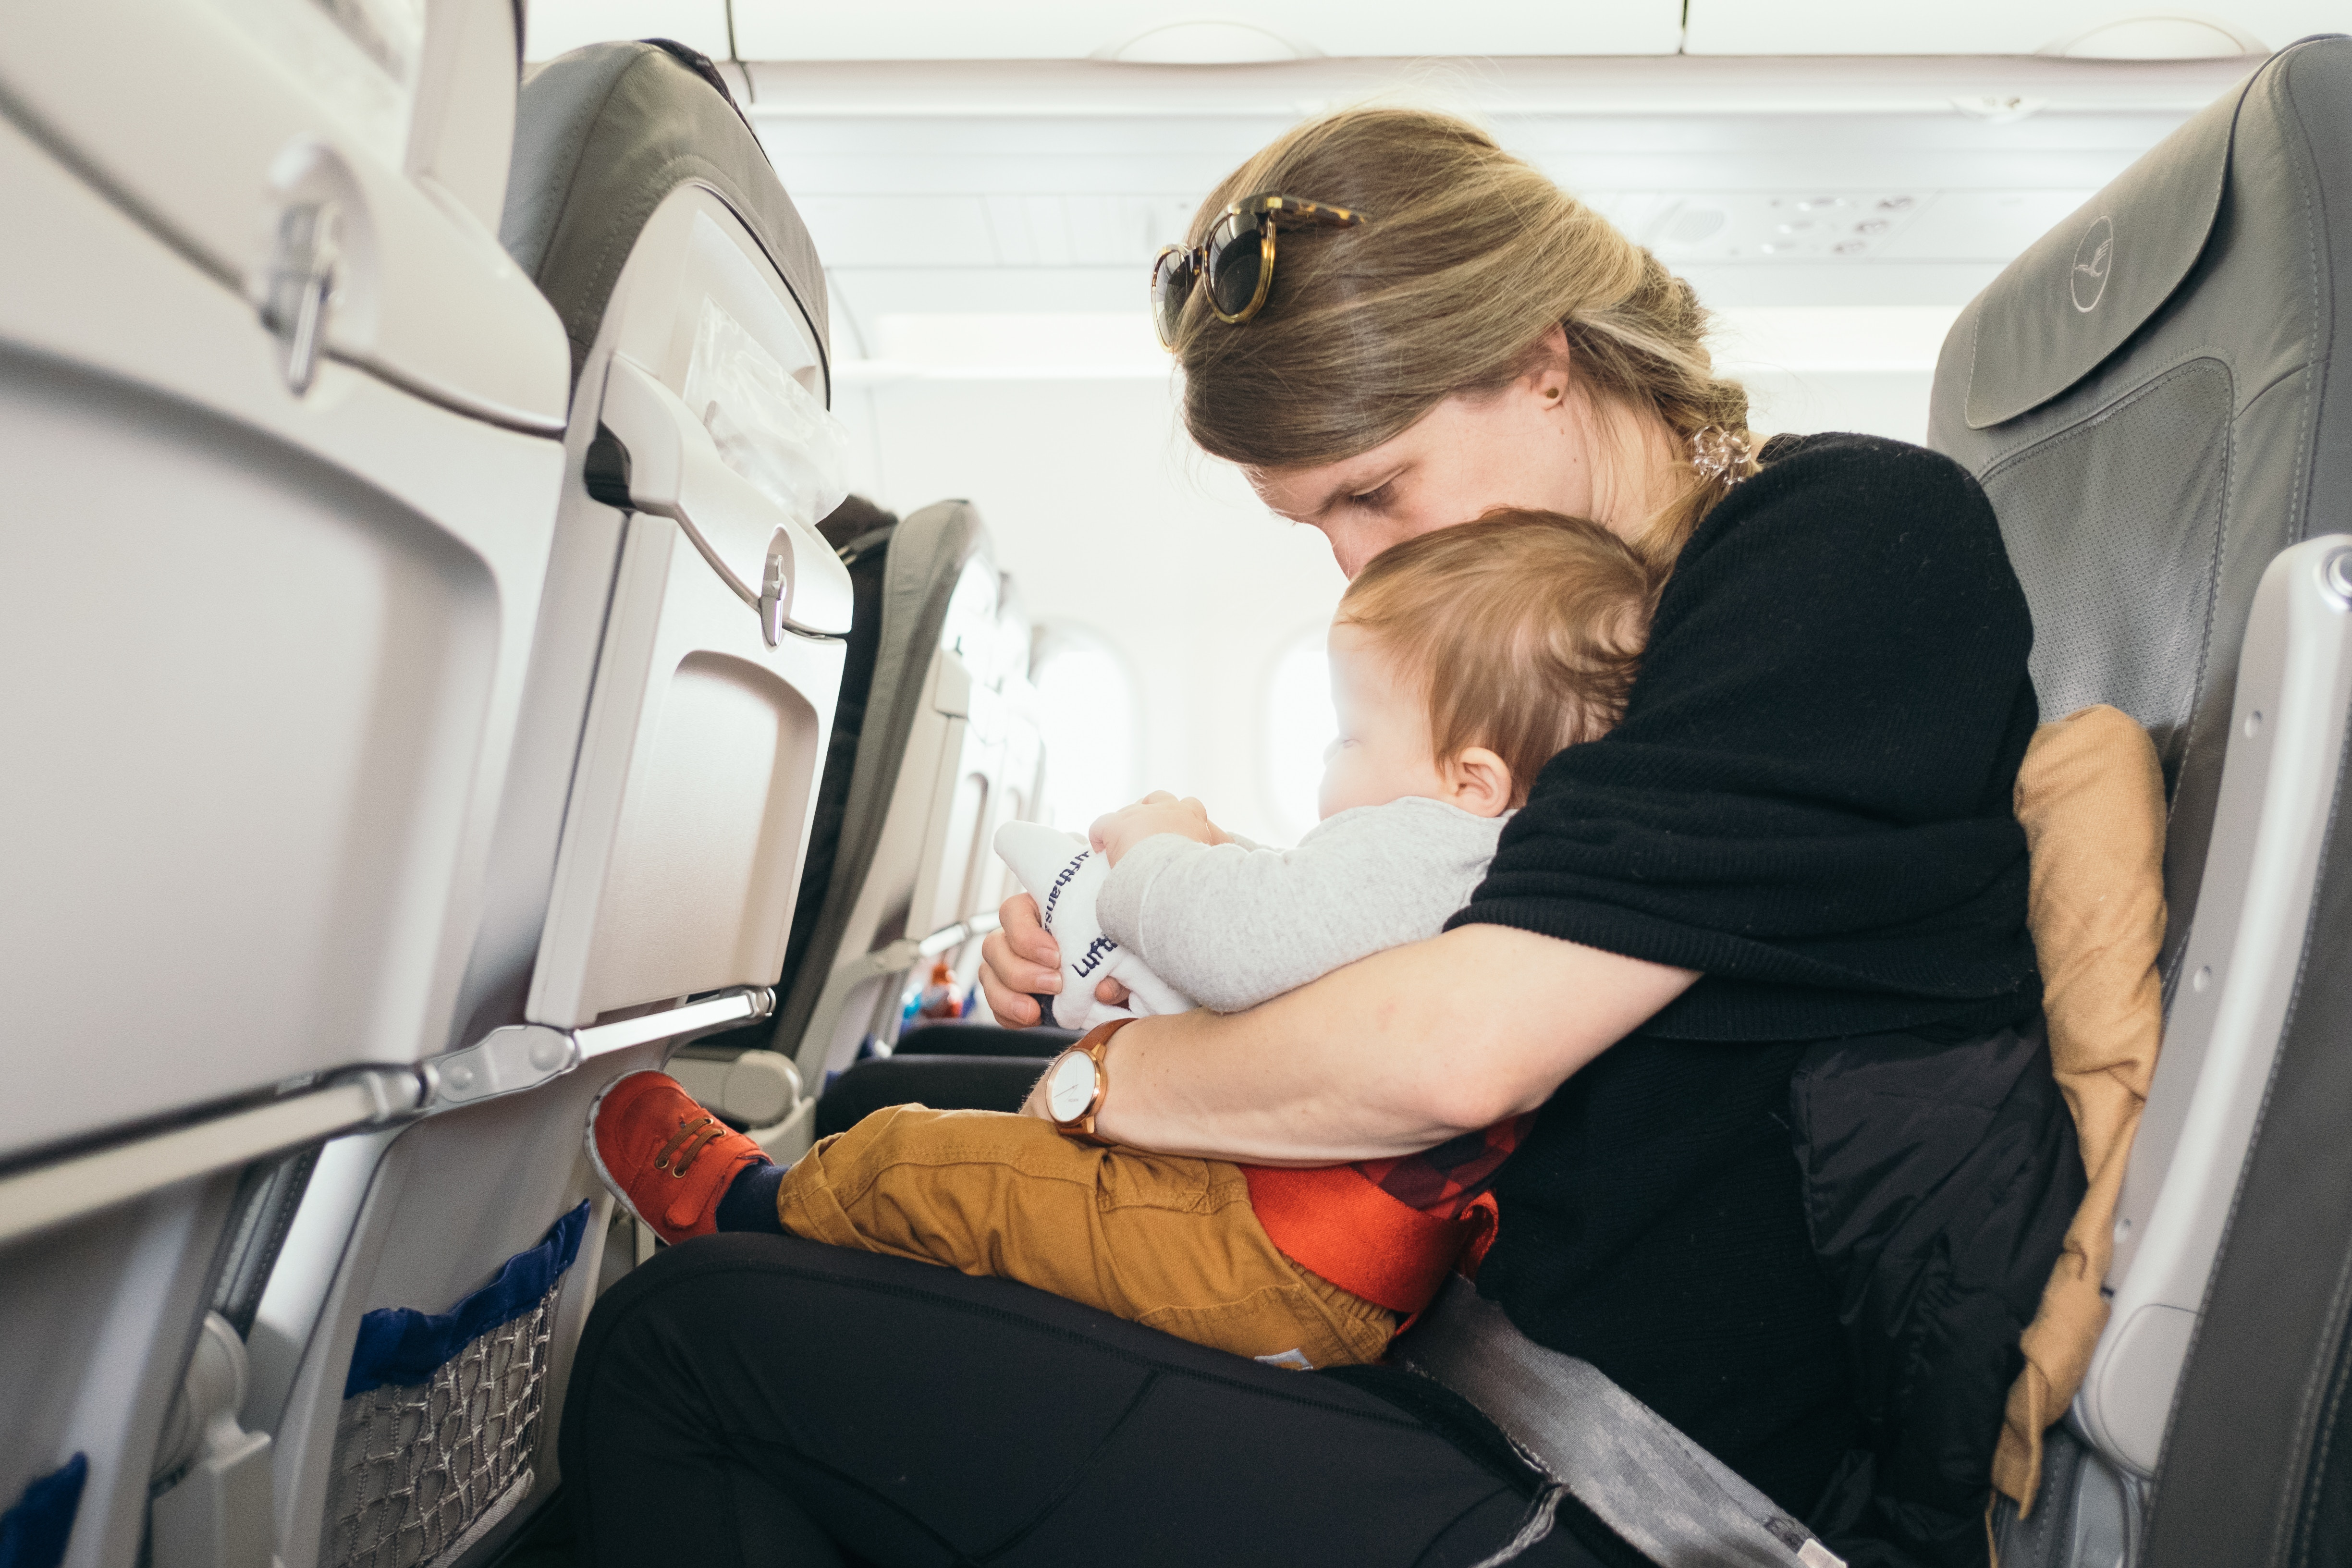 Baby on an airplane. Preparing your baby for jet lag